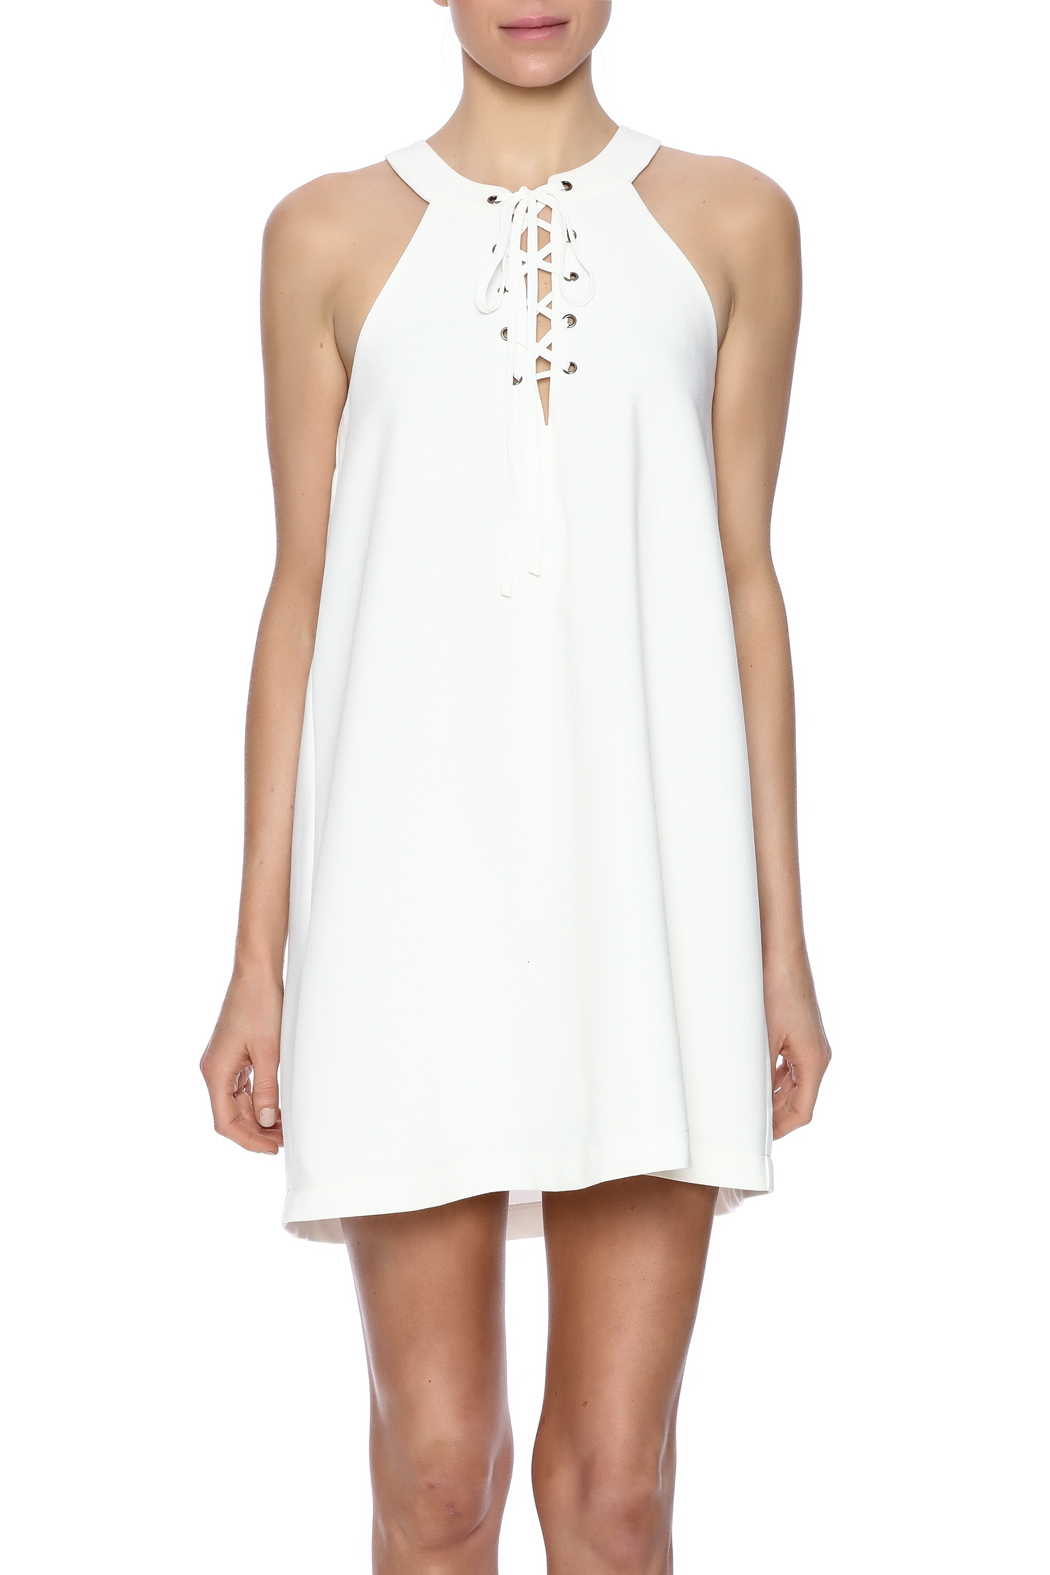 J.O.A. Lace Up Dress - Side Cropped Image